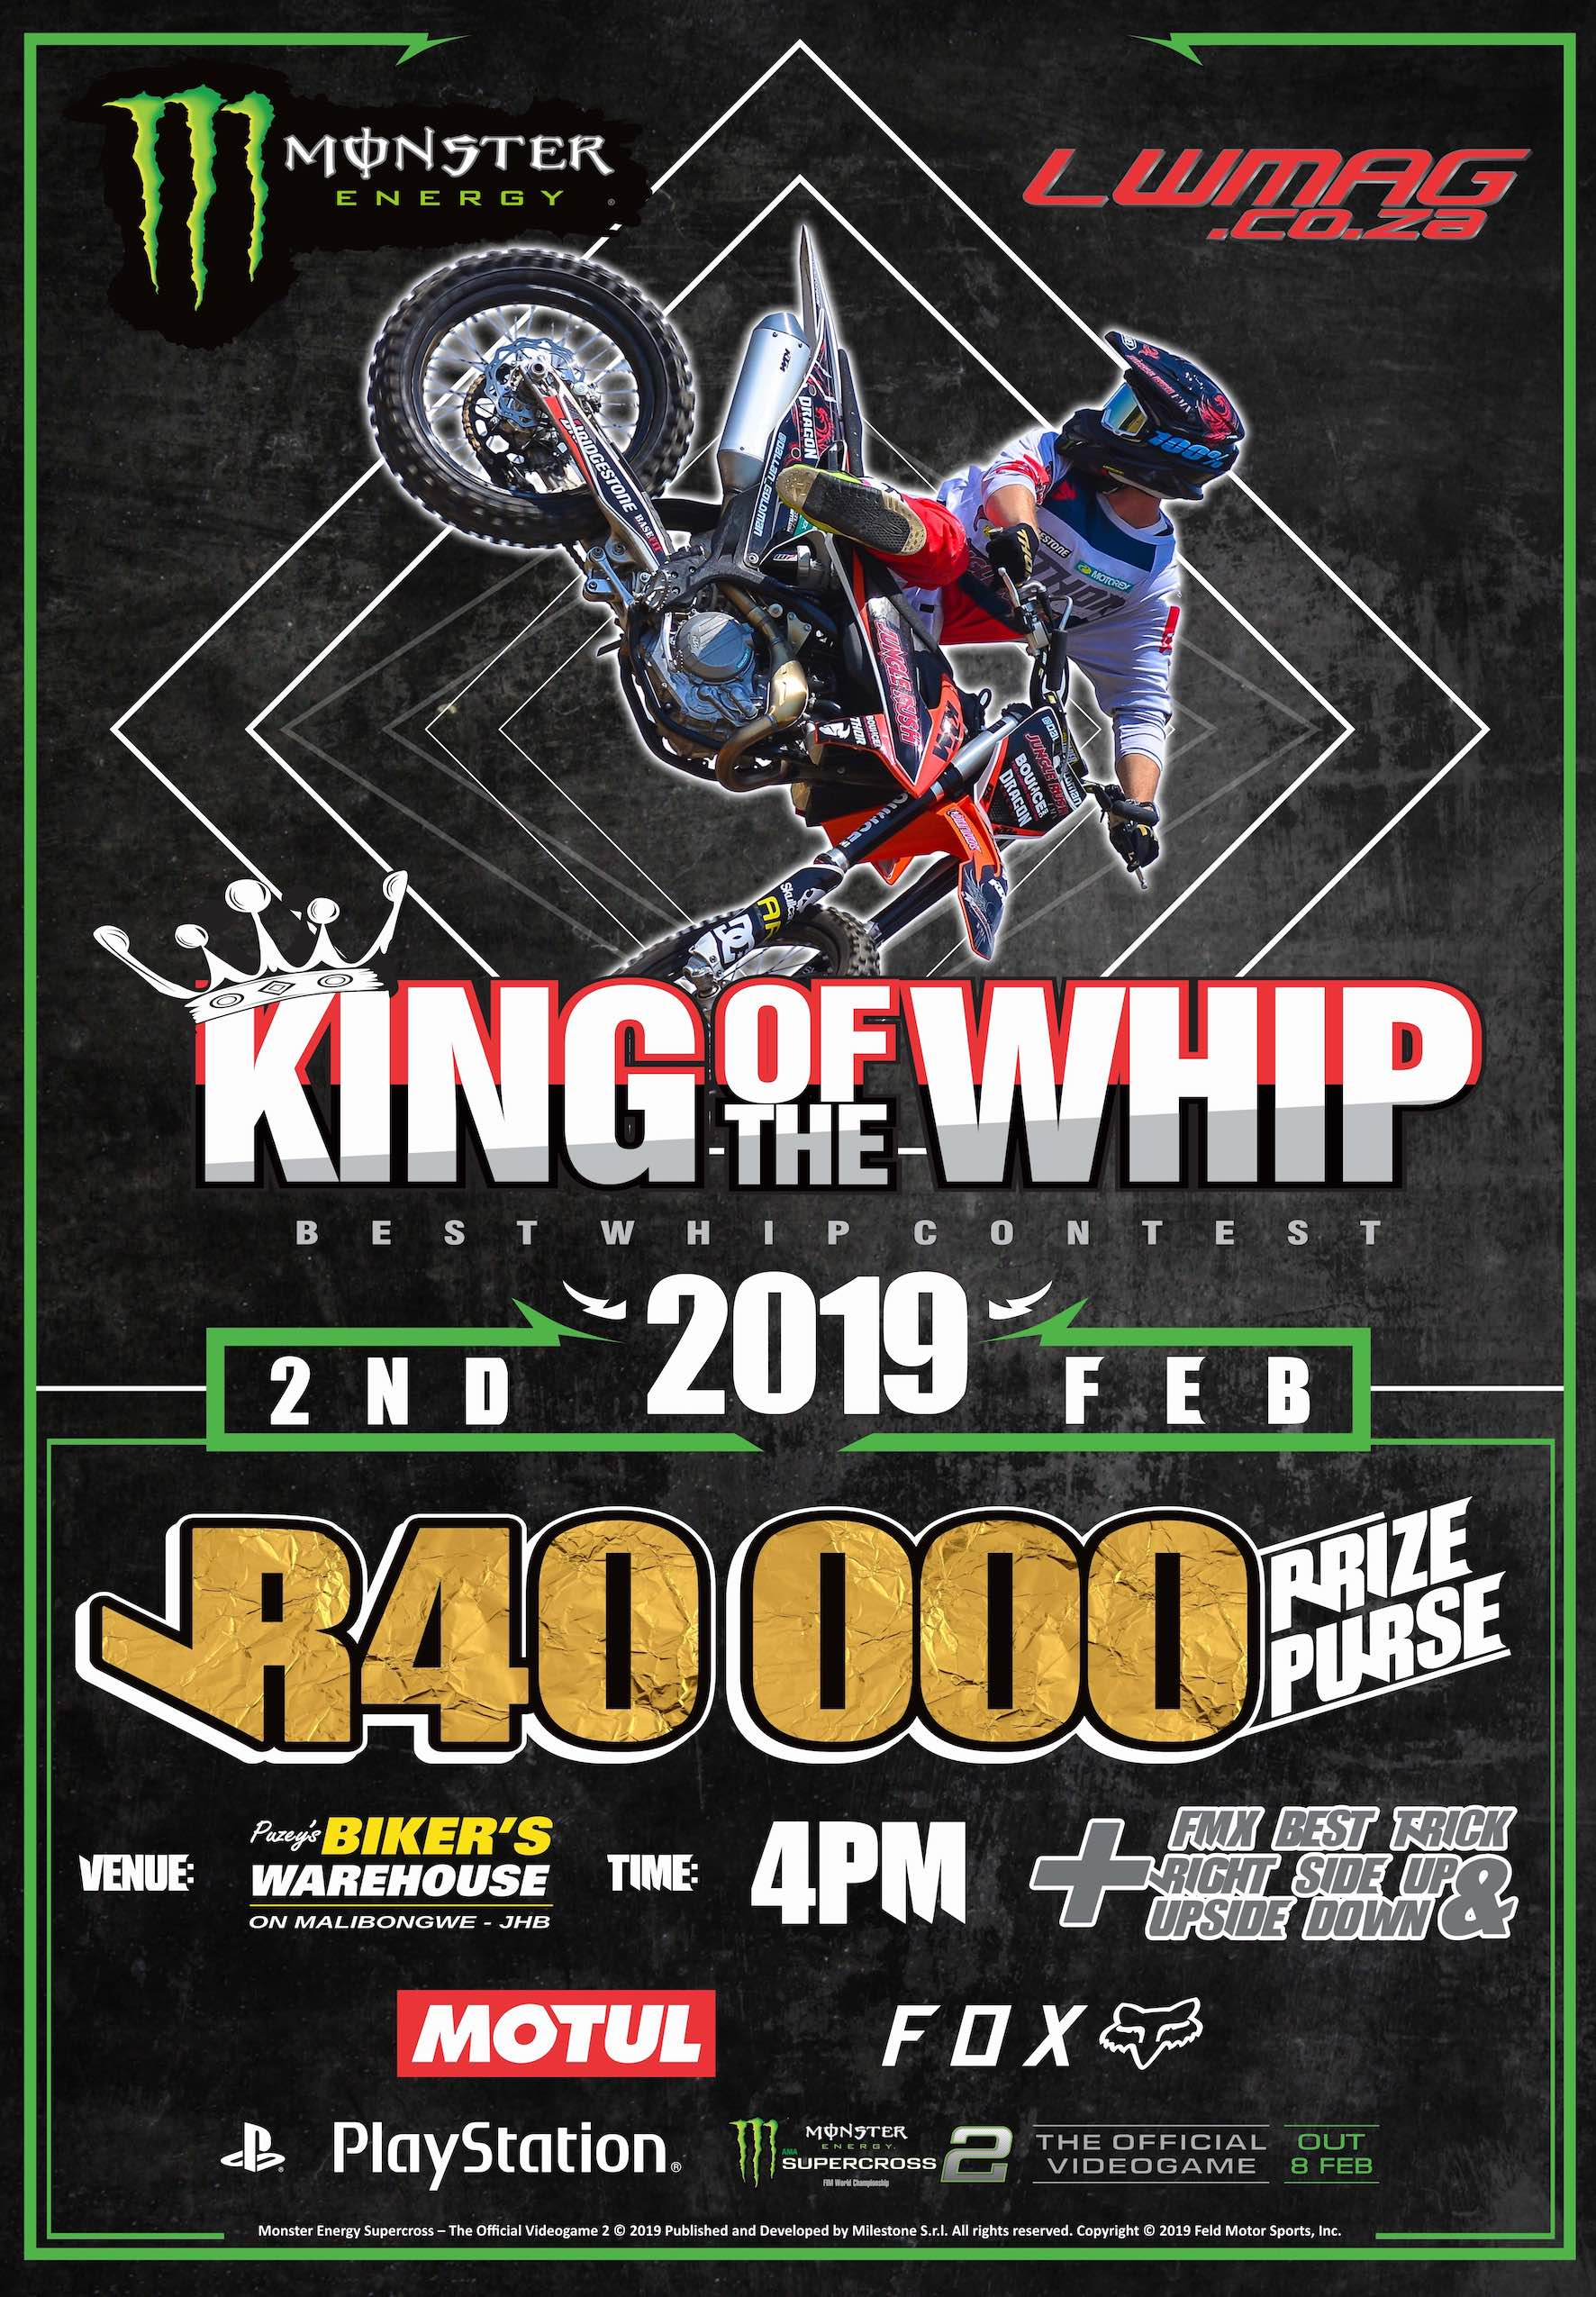 Announcing the 2019 King of the Whip Freestyle Motocross event